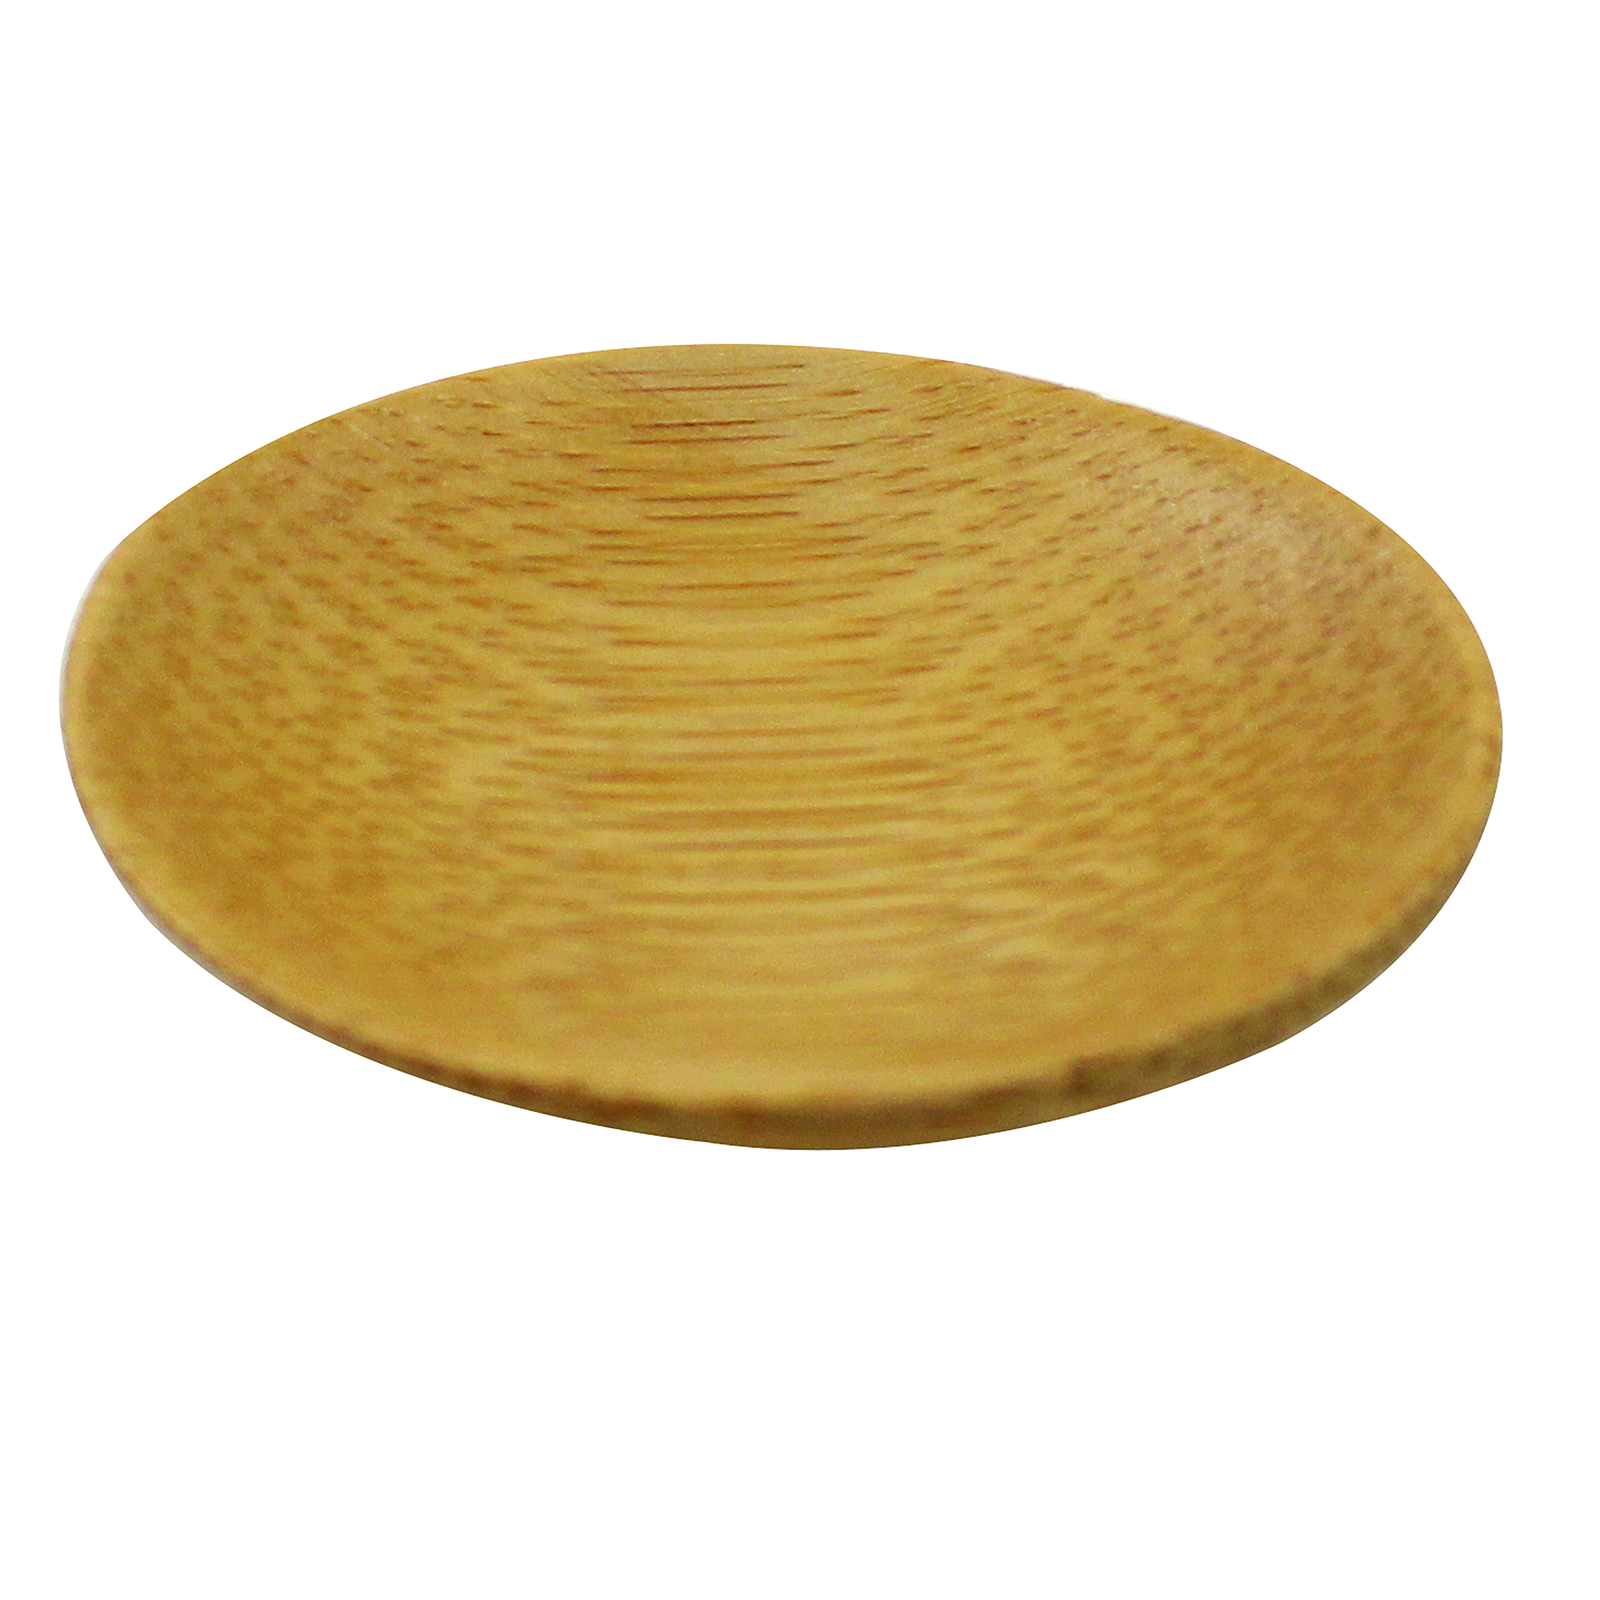 TableCraft Products BAMDRBAM2 disposable plates